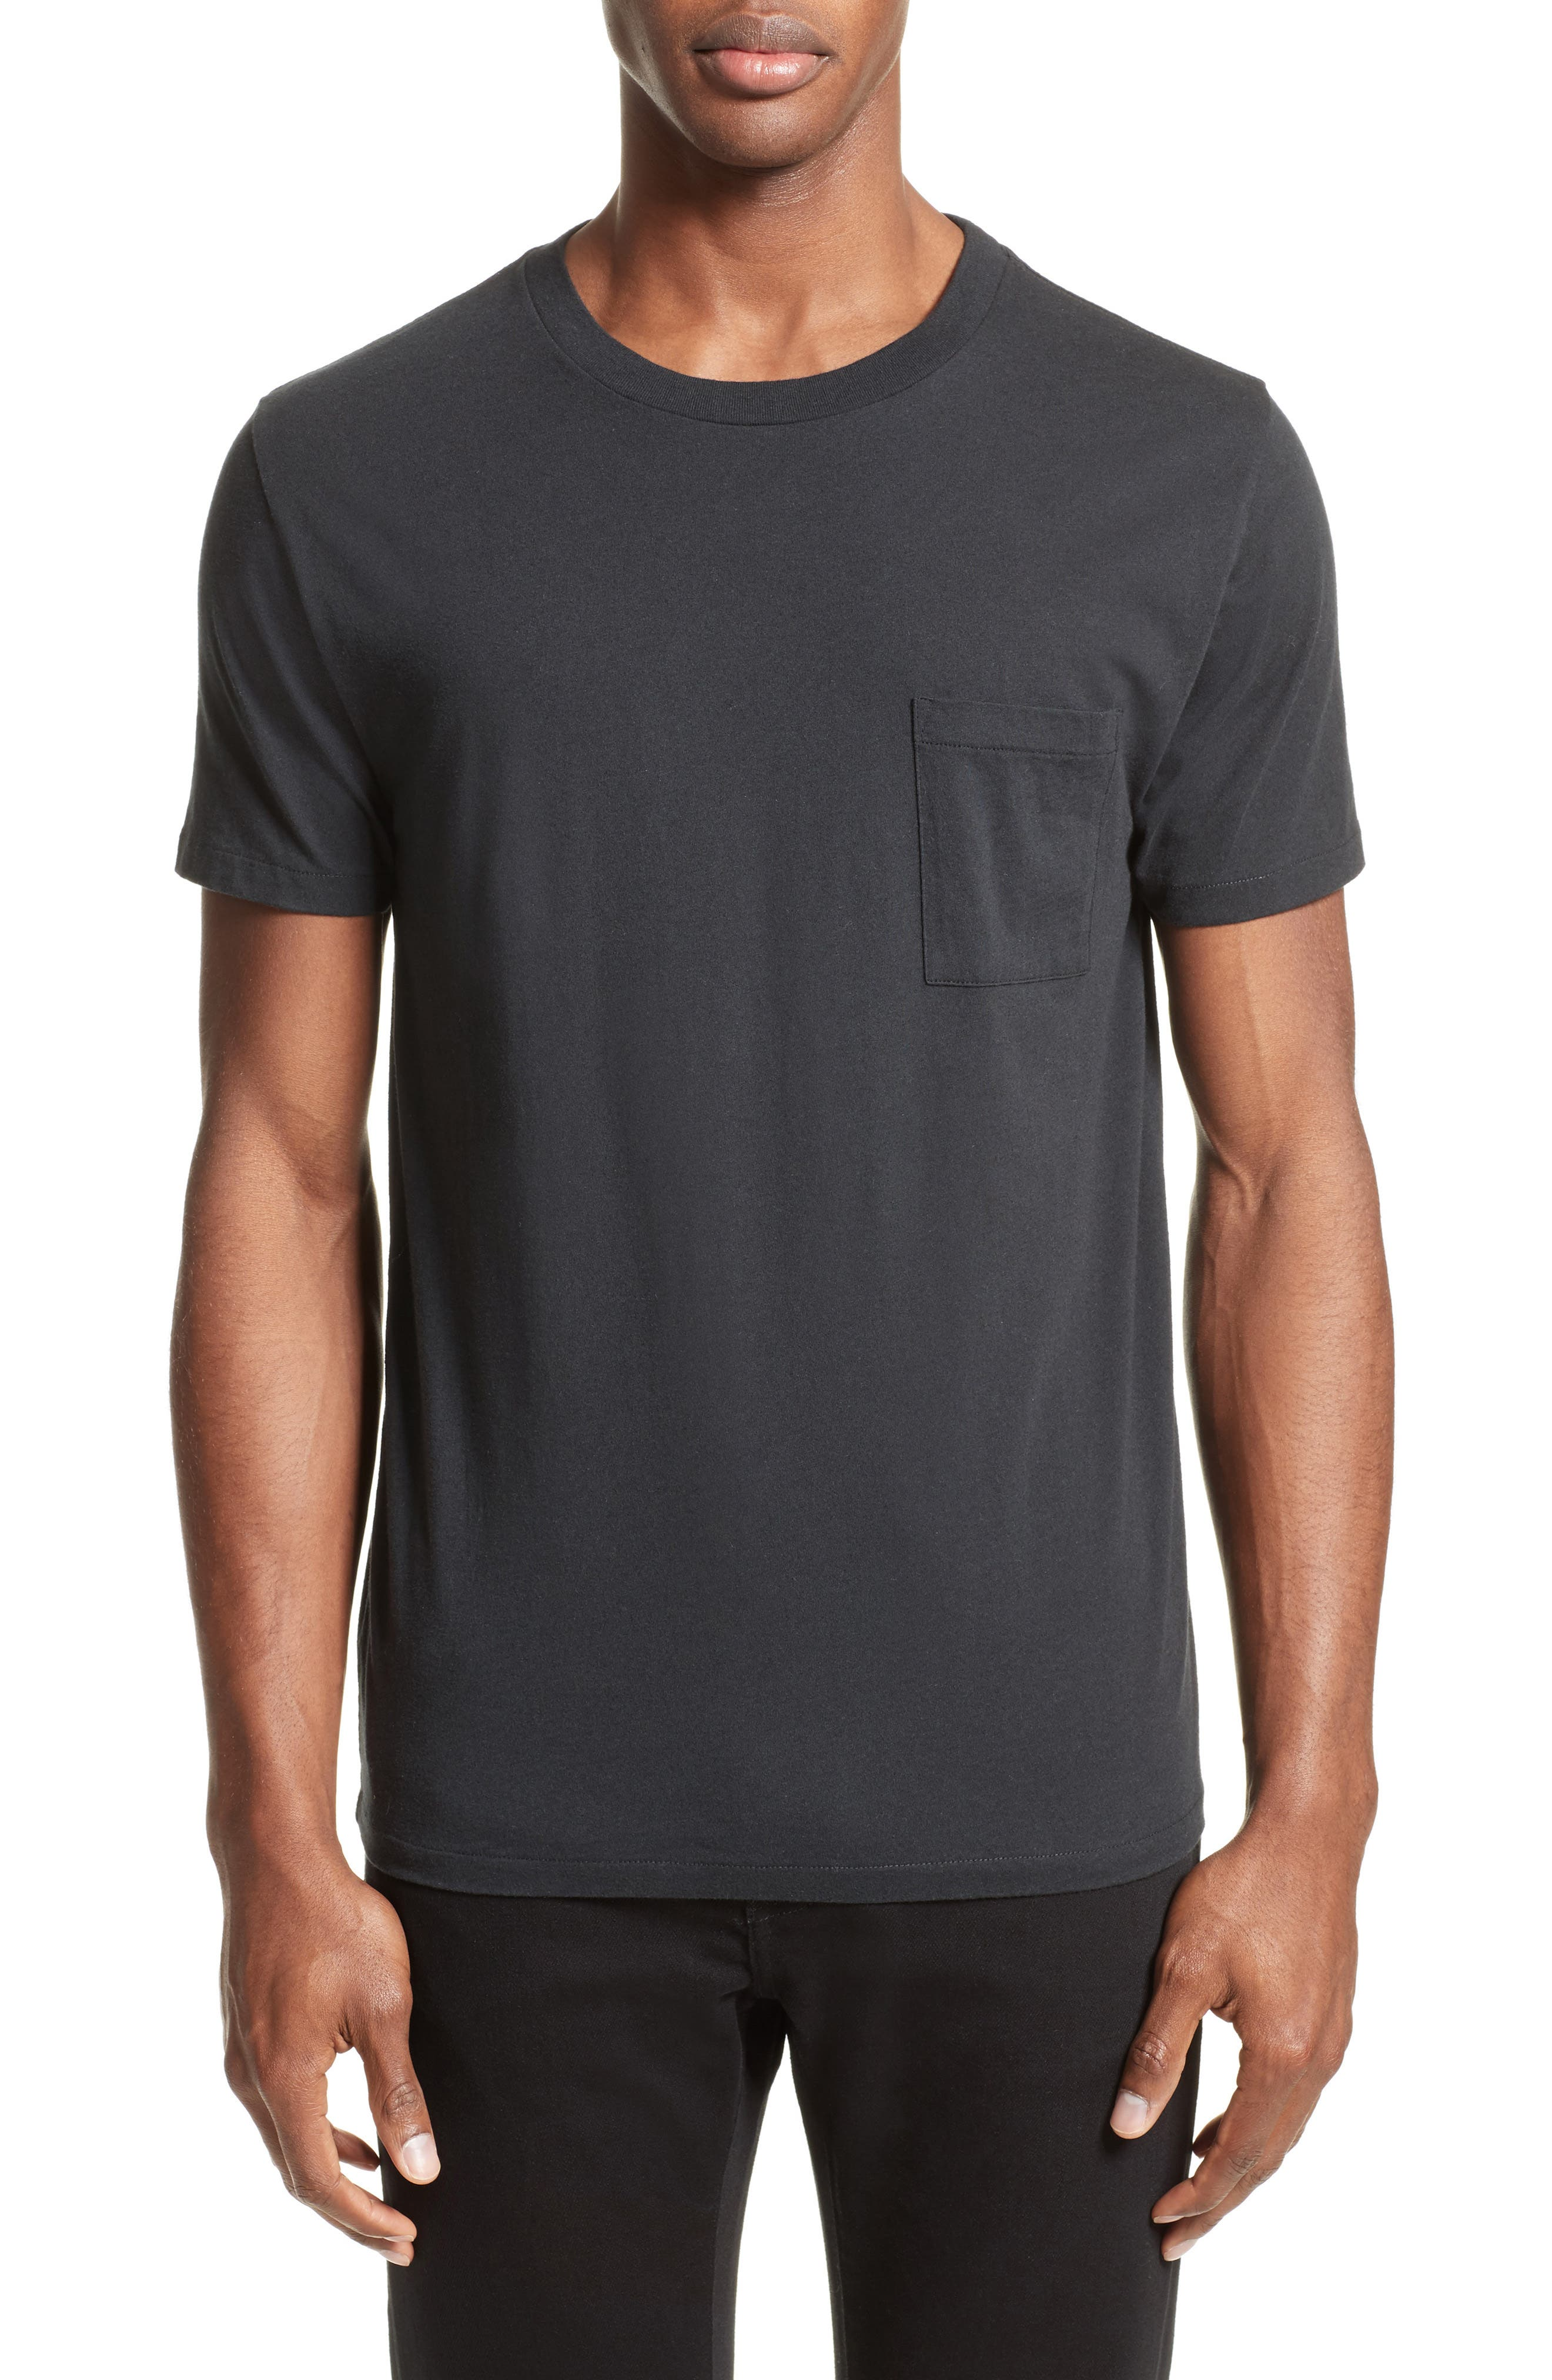 Main Image - Levi's® Made & Crafted™ Pocket T-Shirt